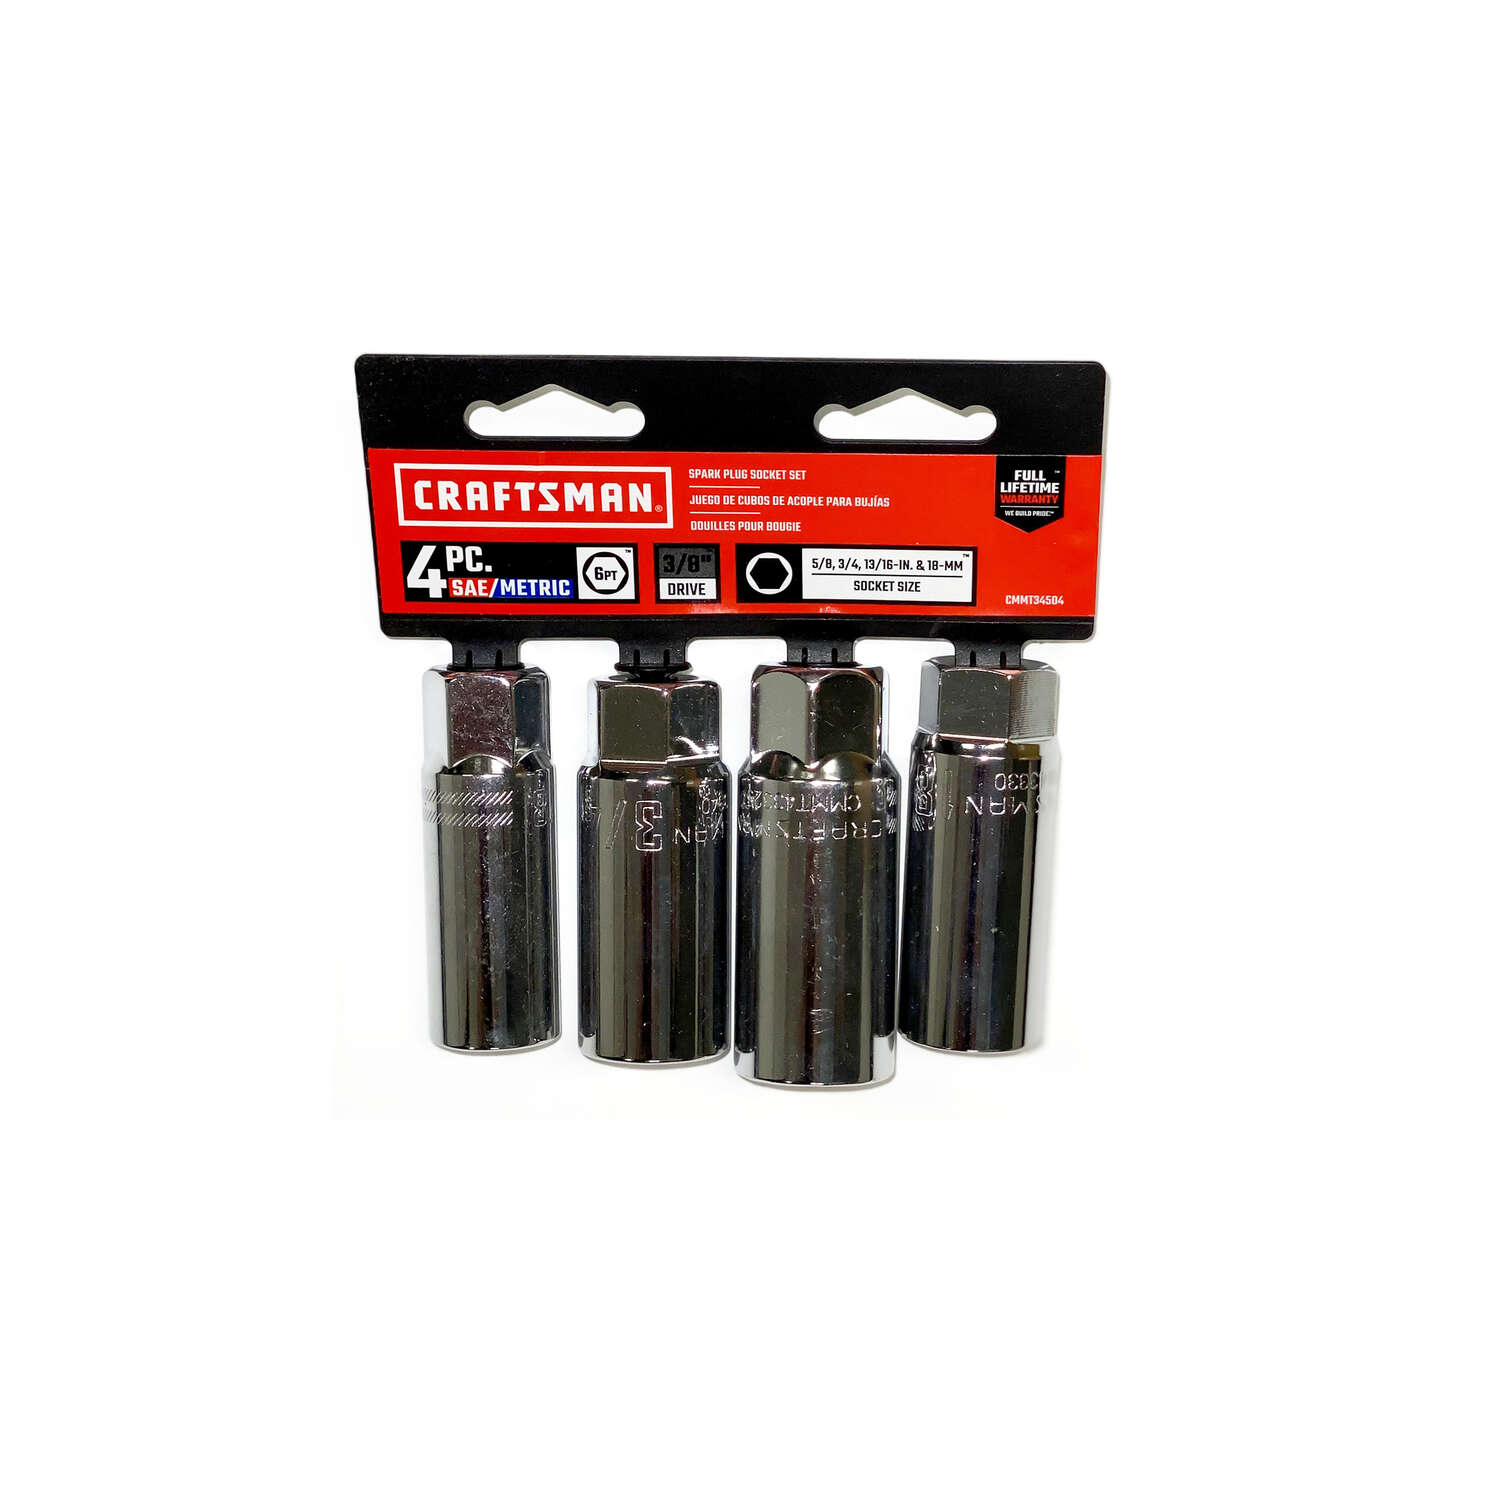 Craftsman  3/8 in. drive  Metric and SAE  6 Point Standard  Spark Plug Socket Set  4 pc.